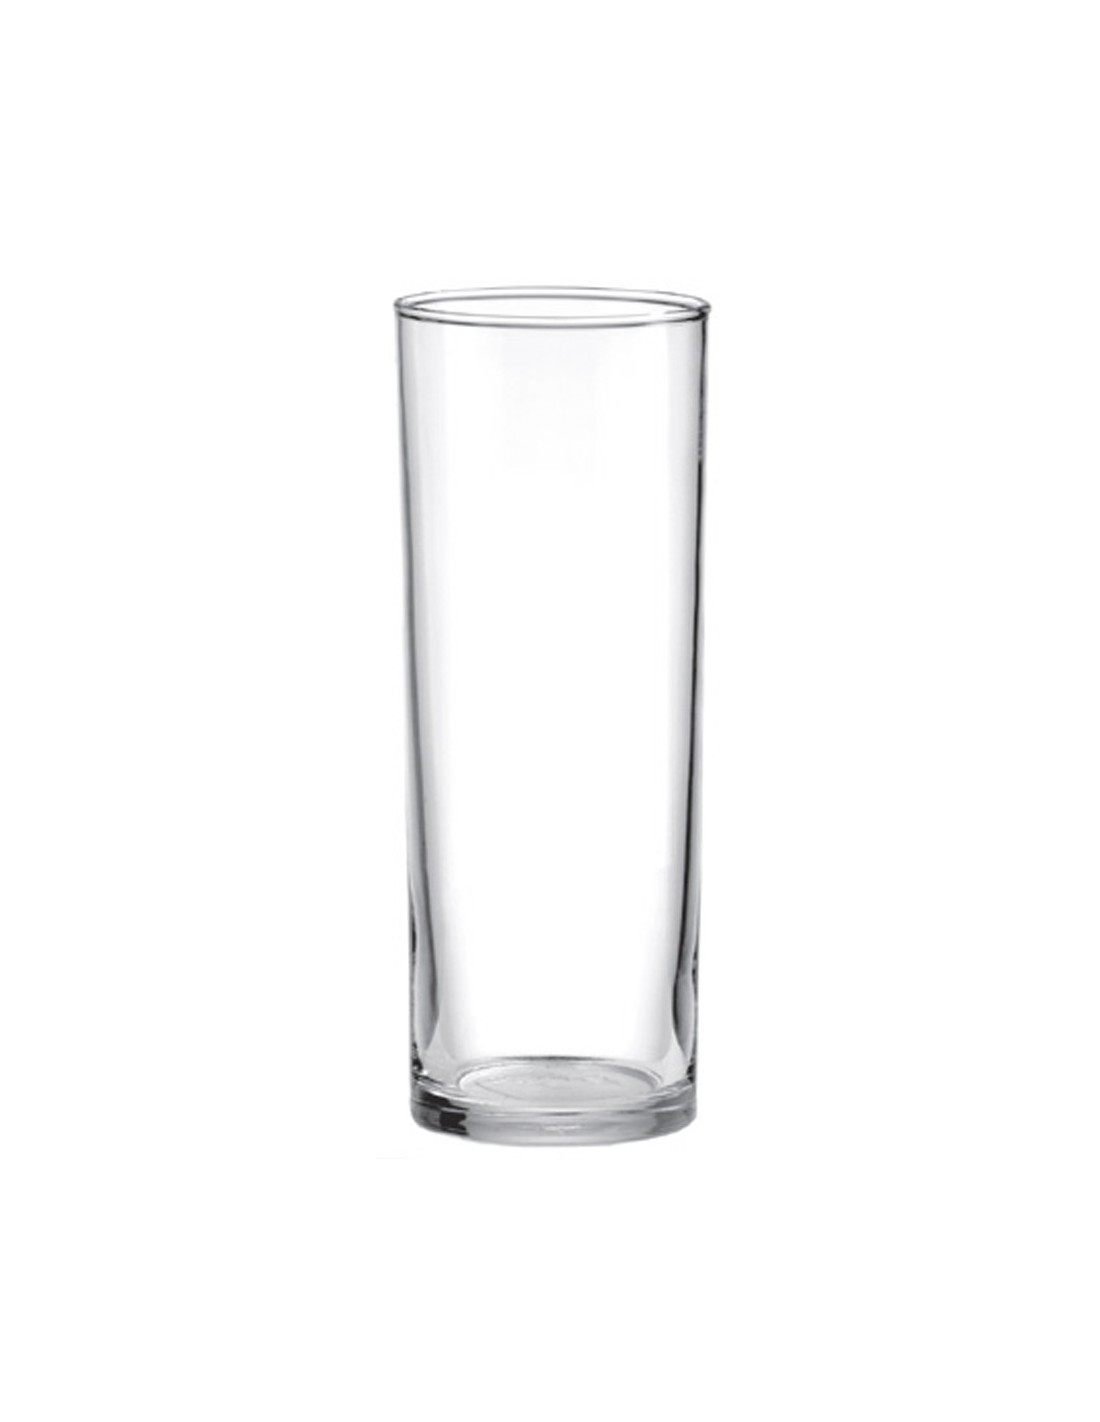 Crisa 9601 vaso tubo lunita 315 ml for Vasos de colores de cristal